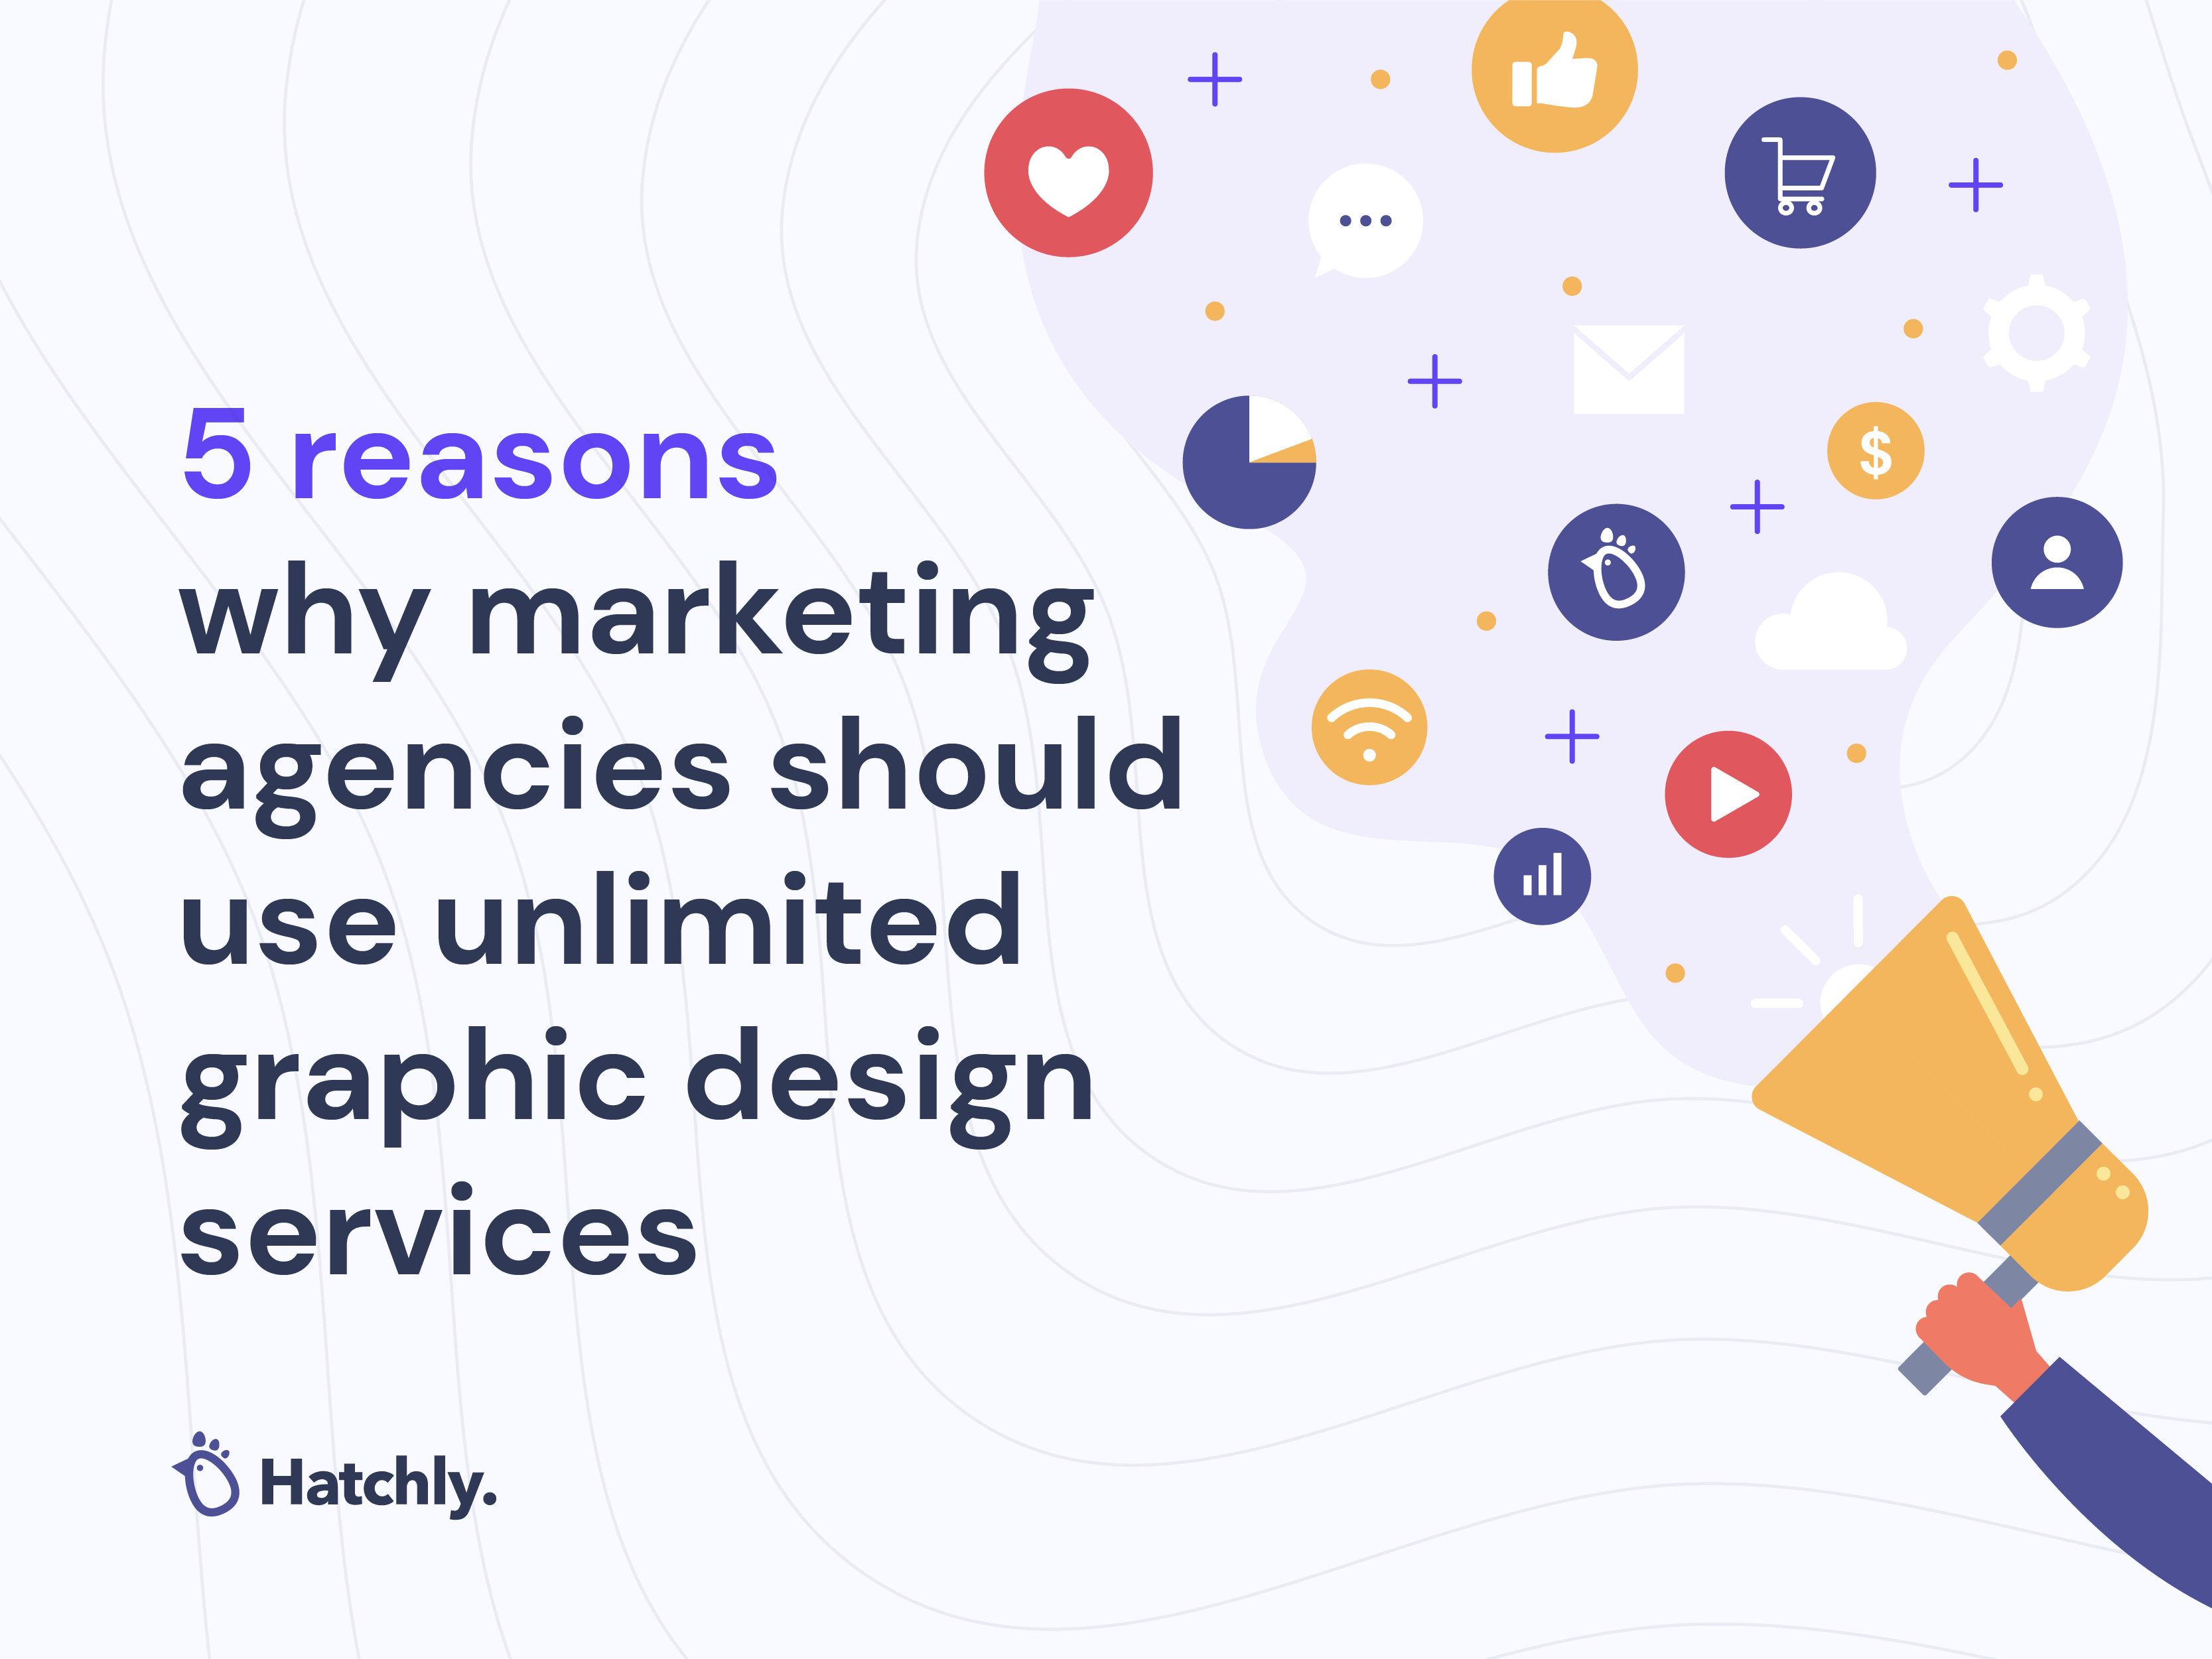 5 reasons why marketing agencies should use unlimited graphic design services 🎨